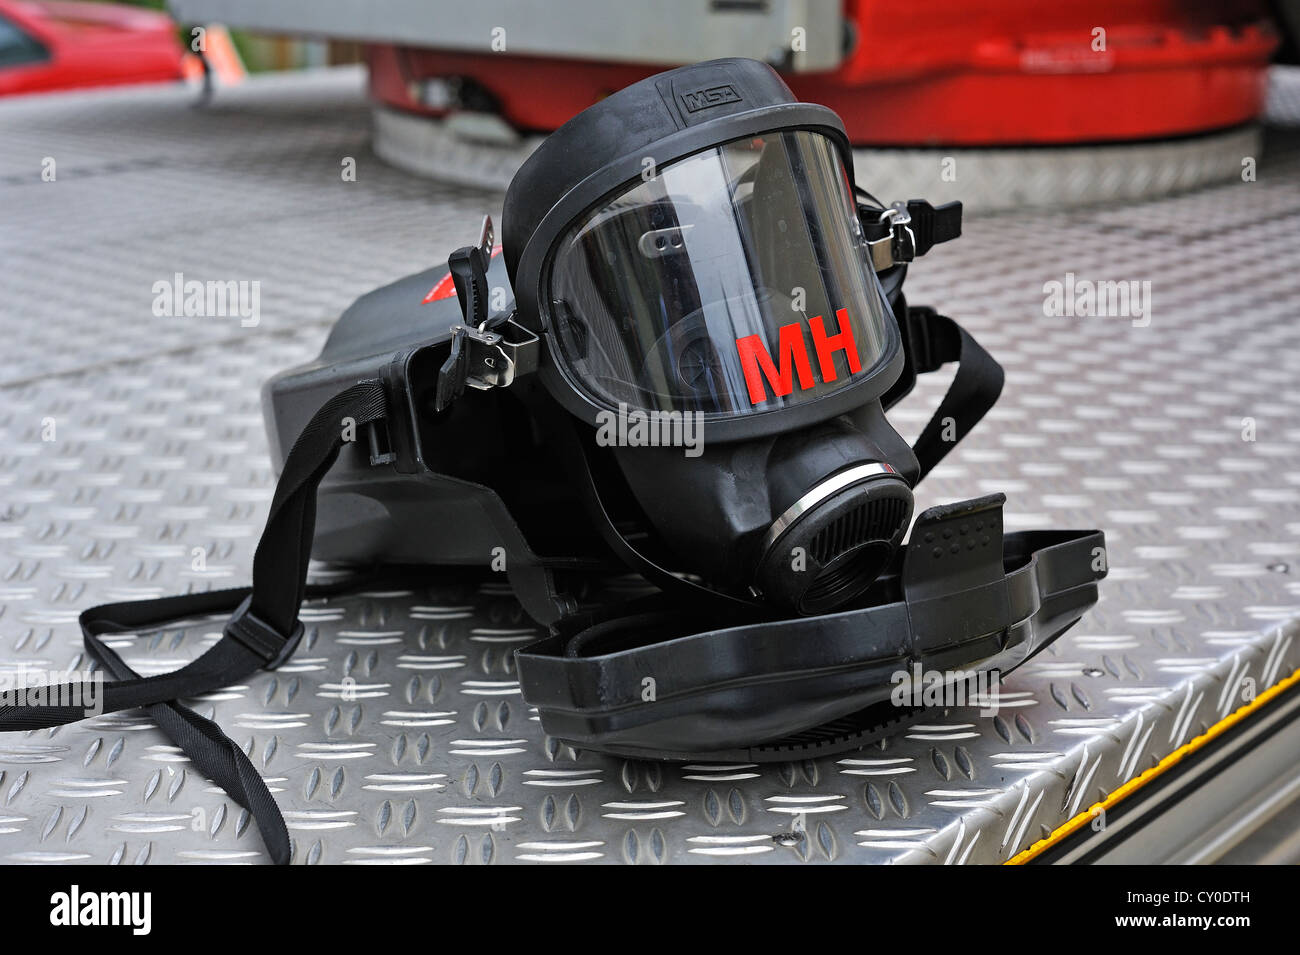 Breathing mask on a fire engine of the volunteer fire department of the town of Lauf an der Pegnitz, Simonshofen - Stock Image